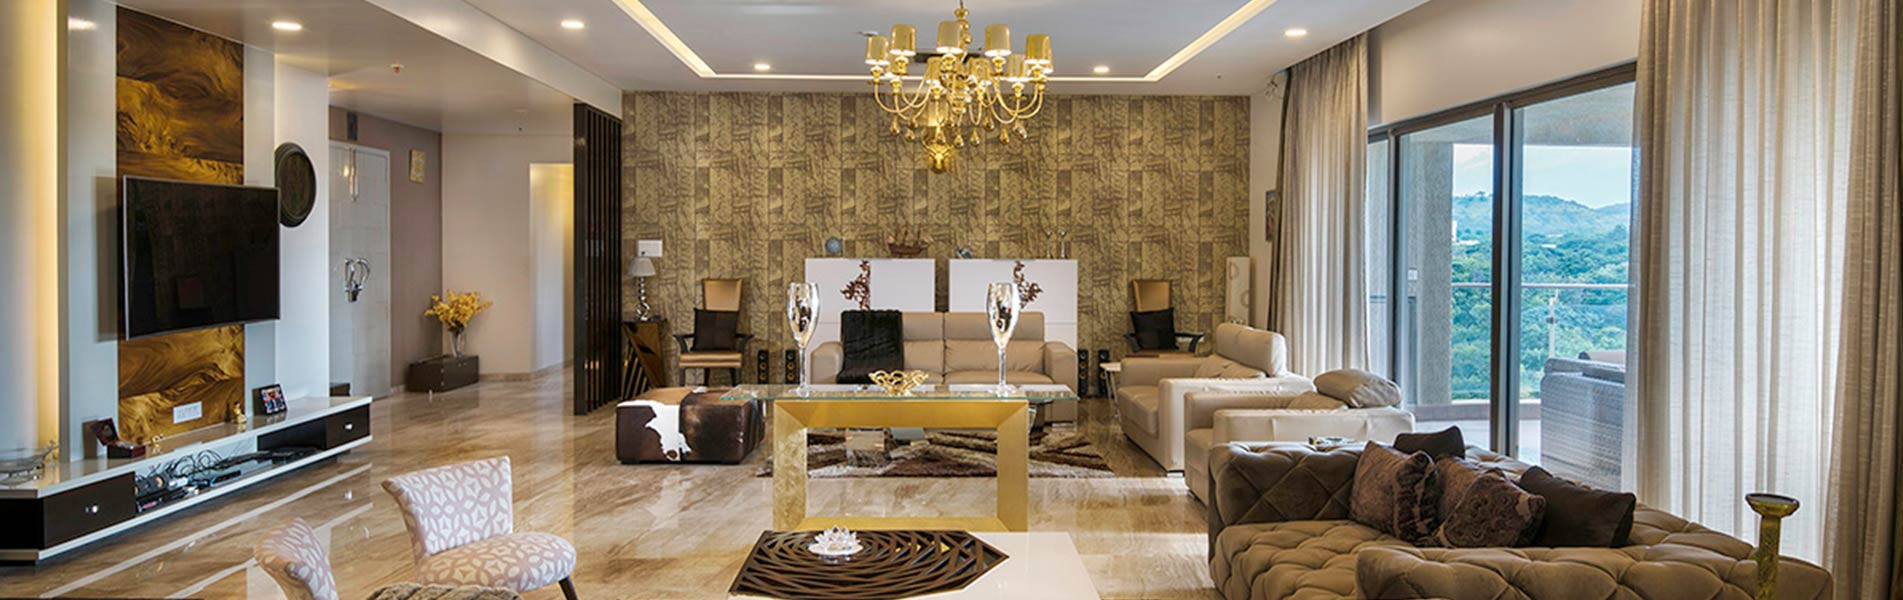 Luxury Flats in Pune